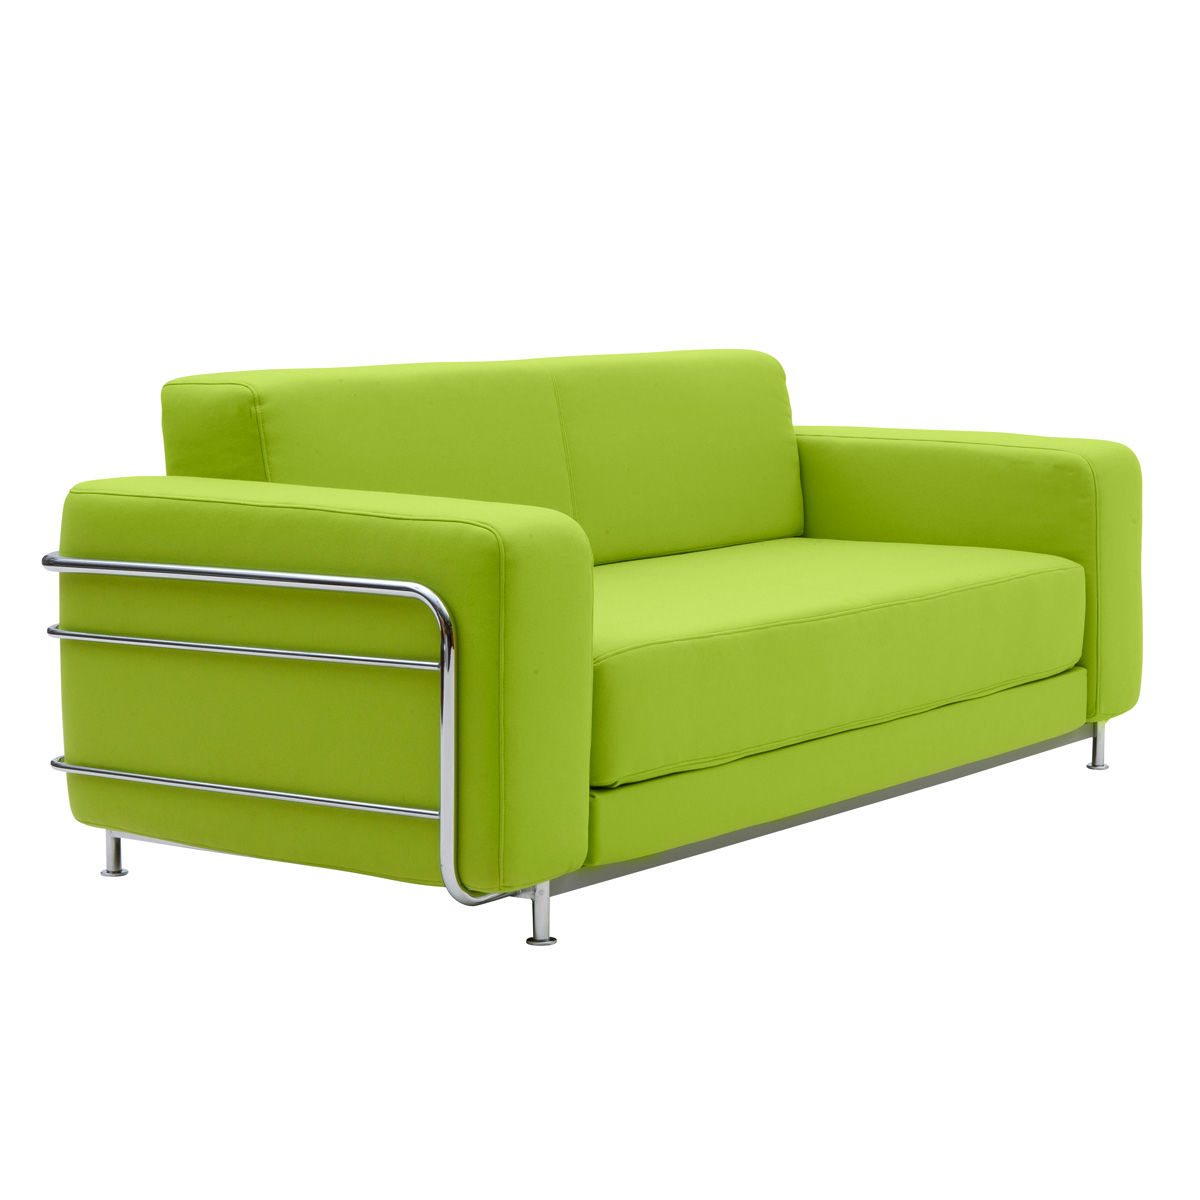 best of lime green sofa design-Stunning Lime Green sofa Plan